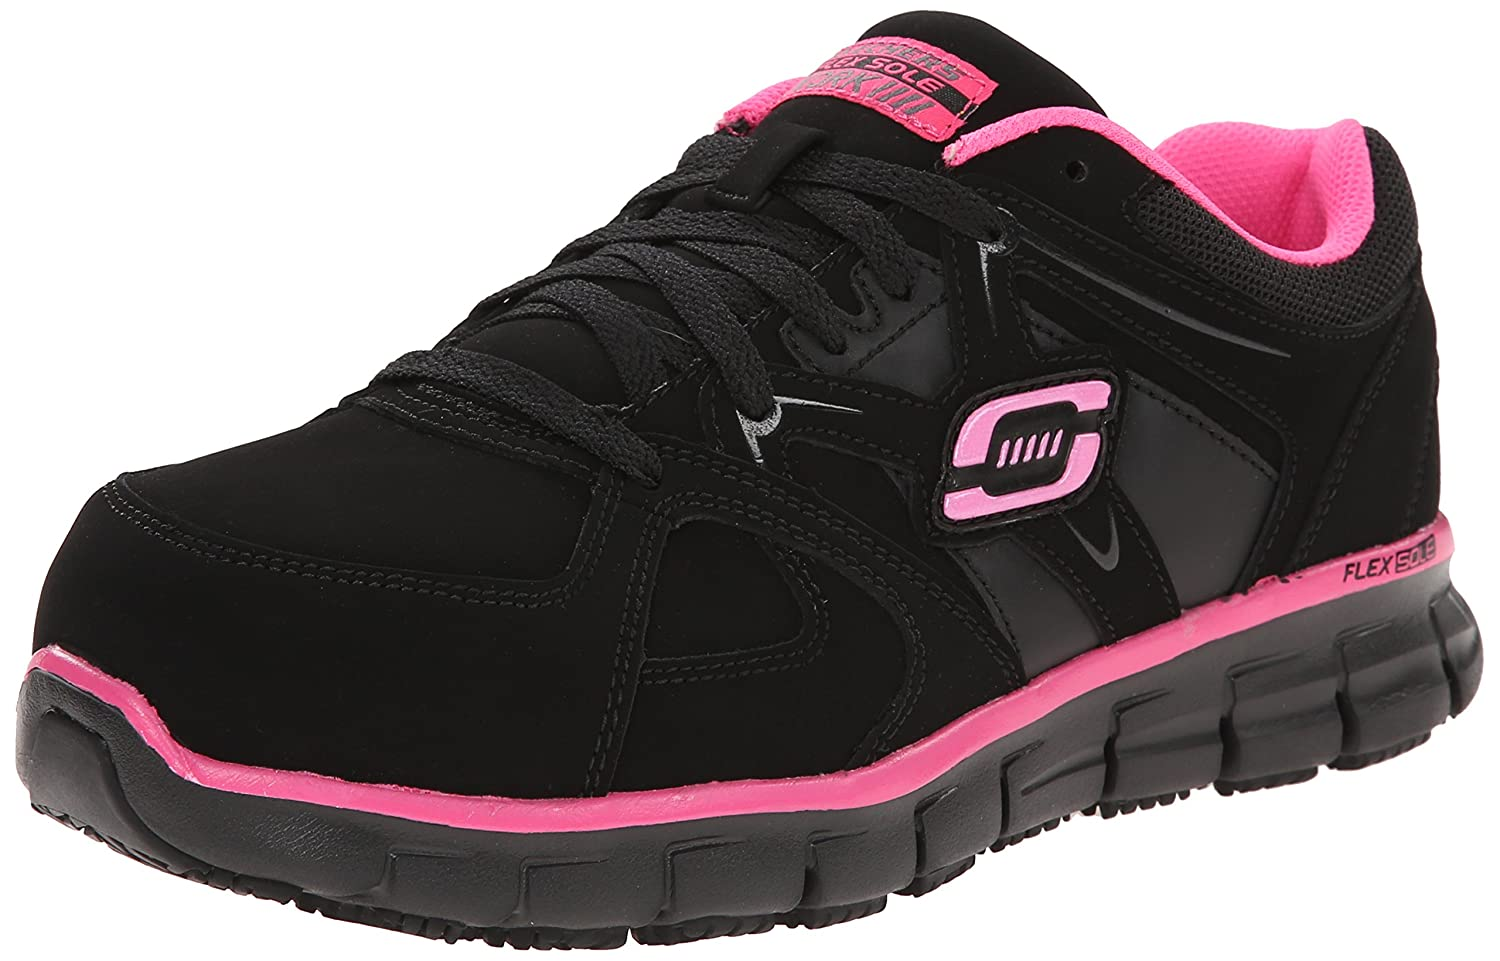 Black Pink Skechers for Work Women's 76553 Synergy Sandlot Steel Toe Lace-Up Work shoes